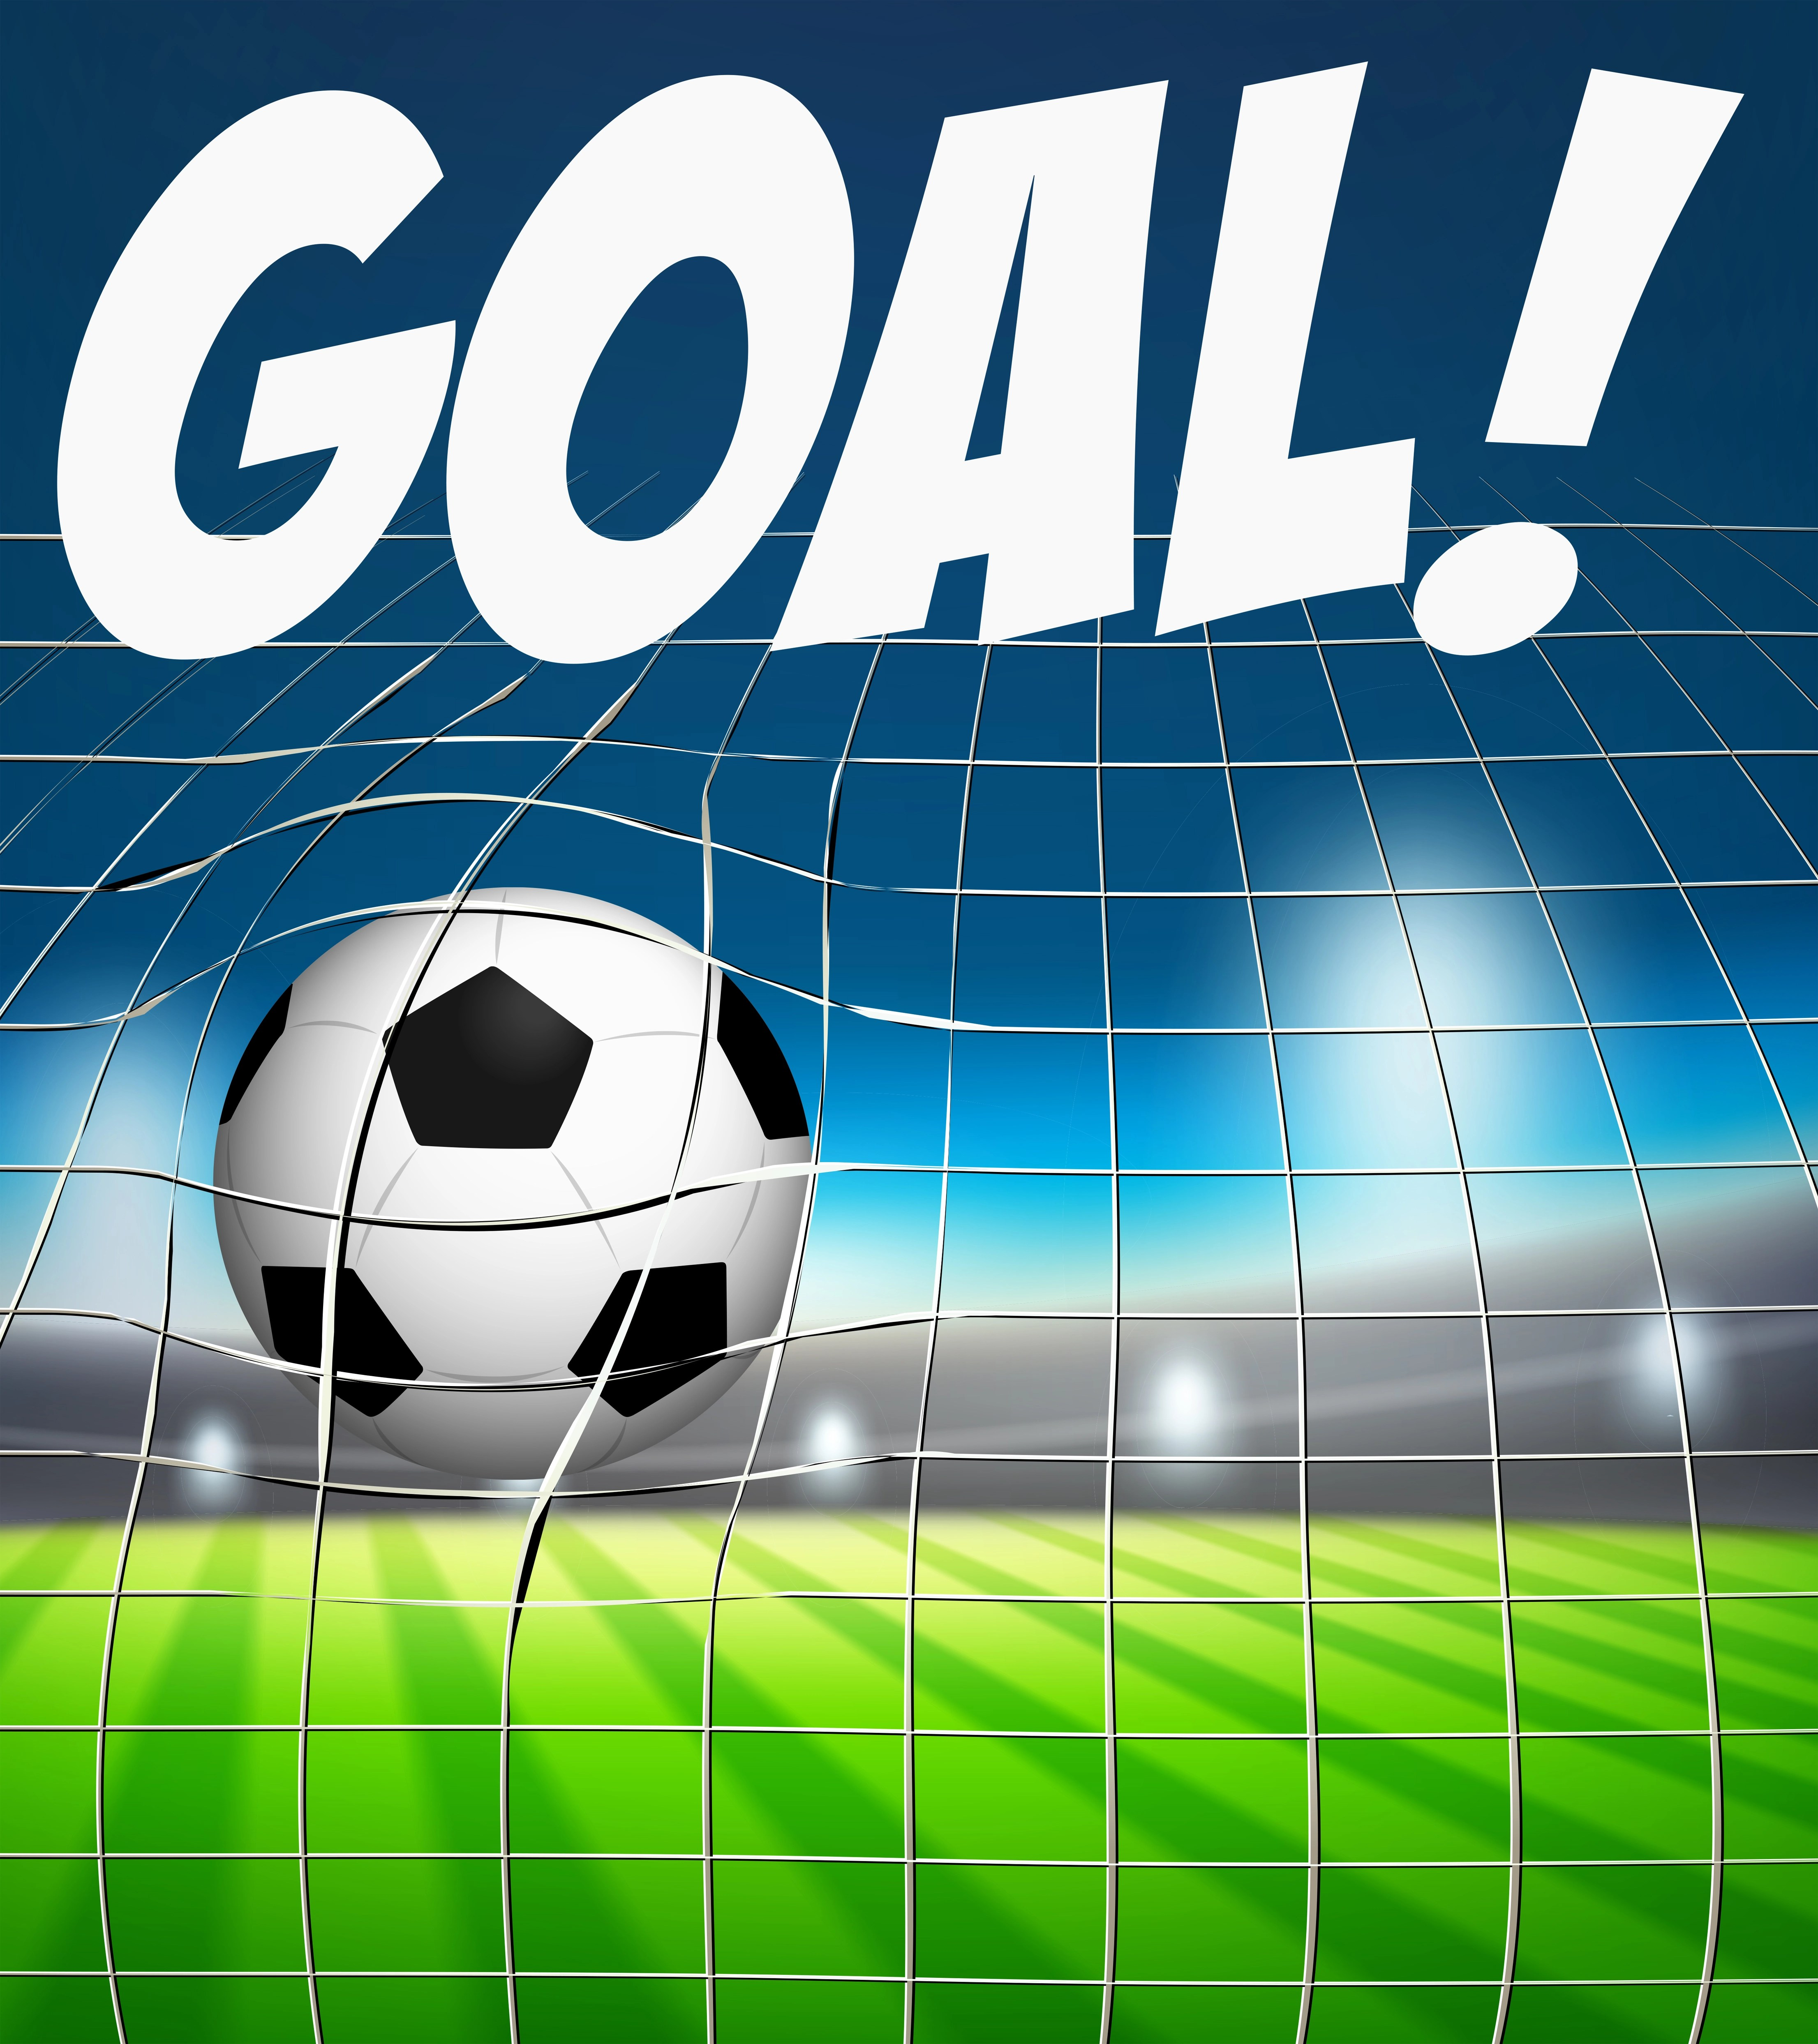 Goal With Soccer Ball In Net Concept